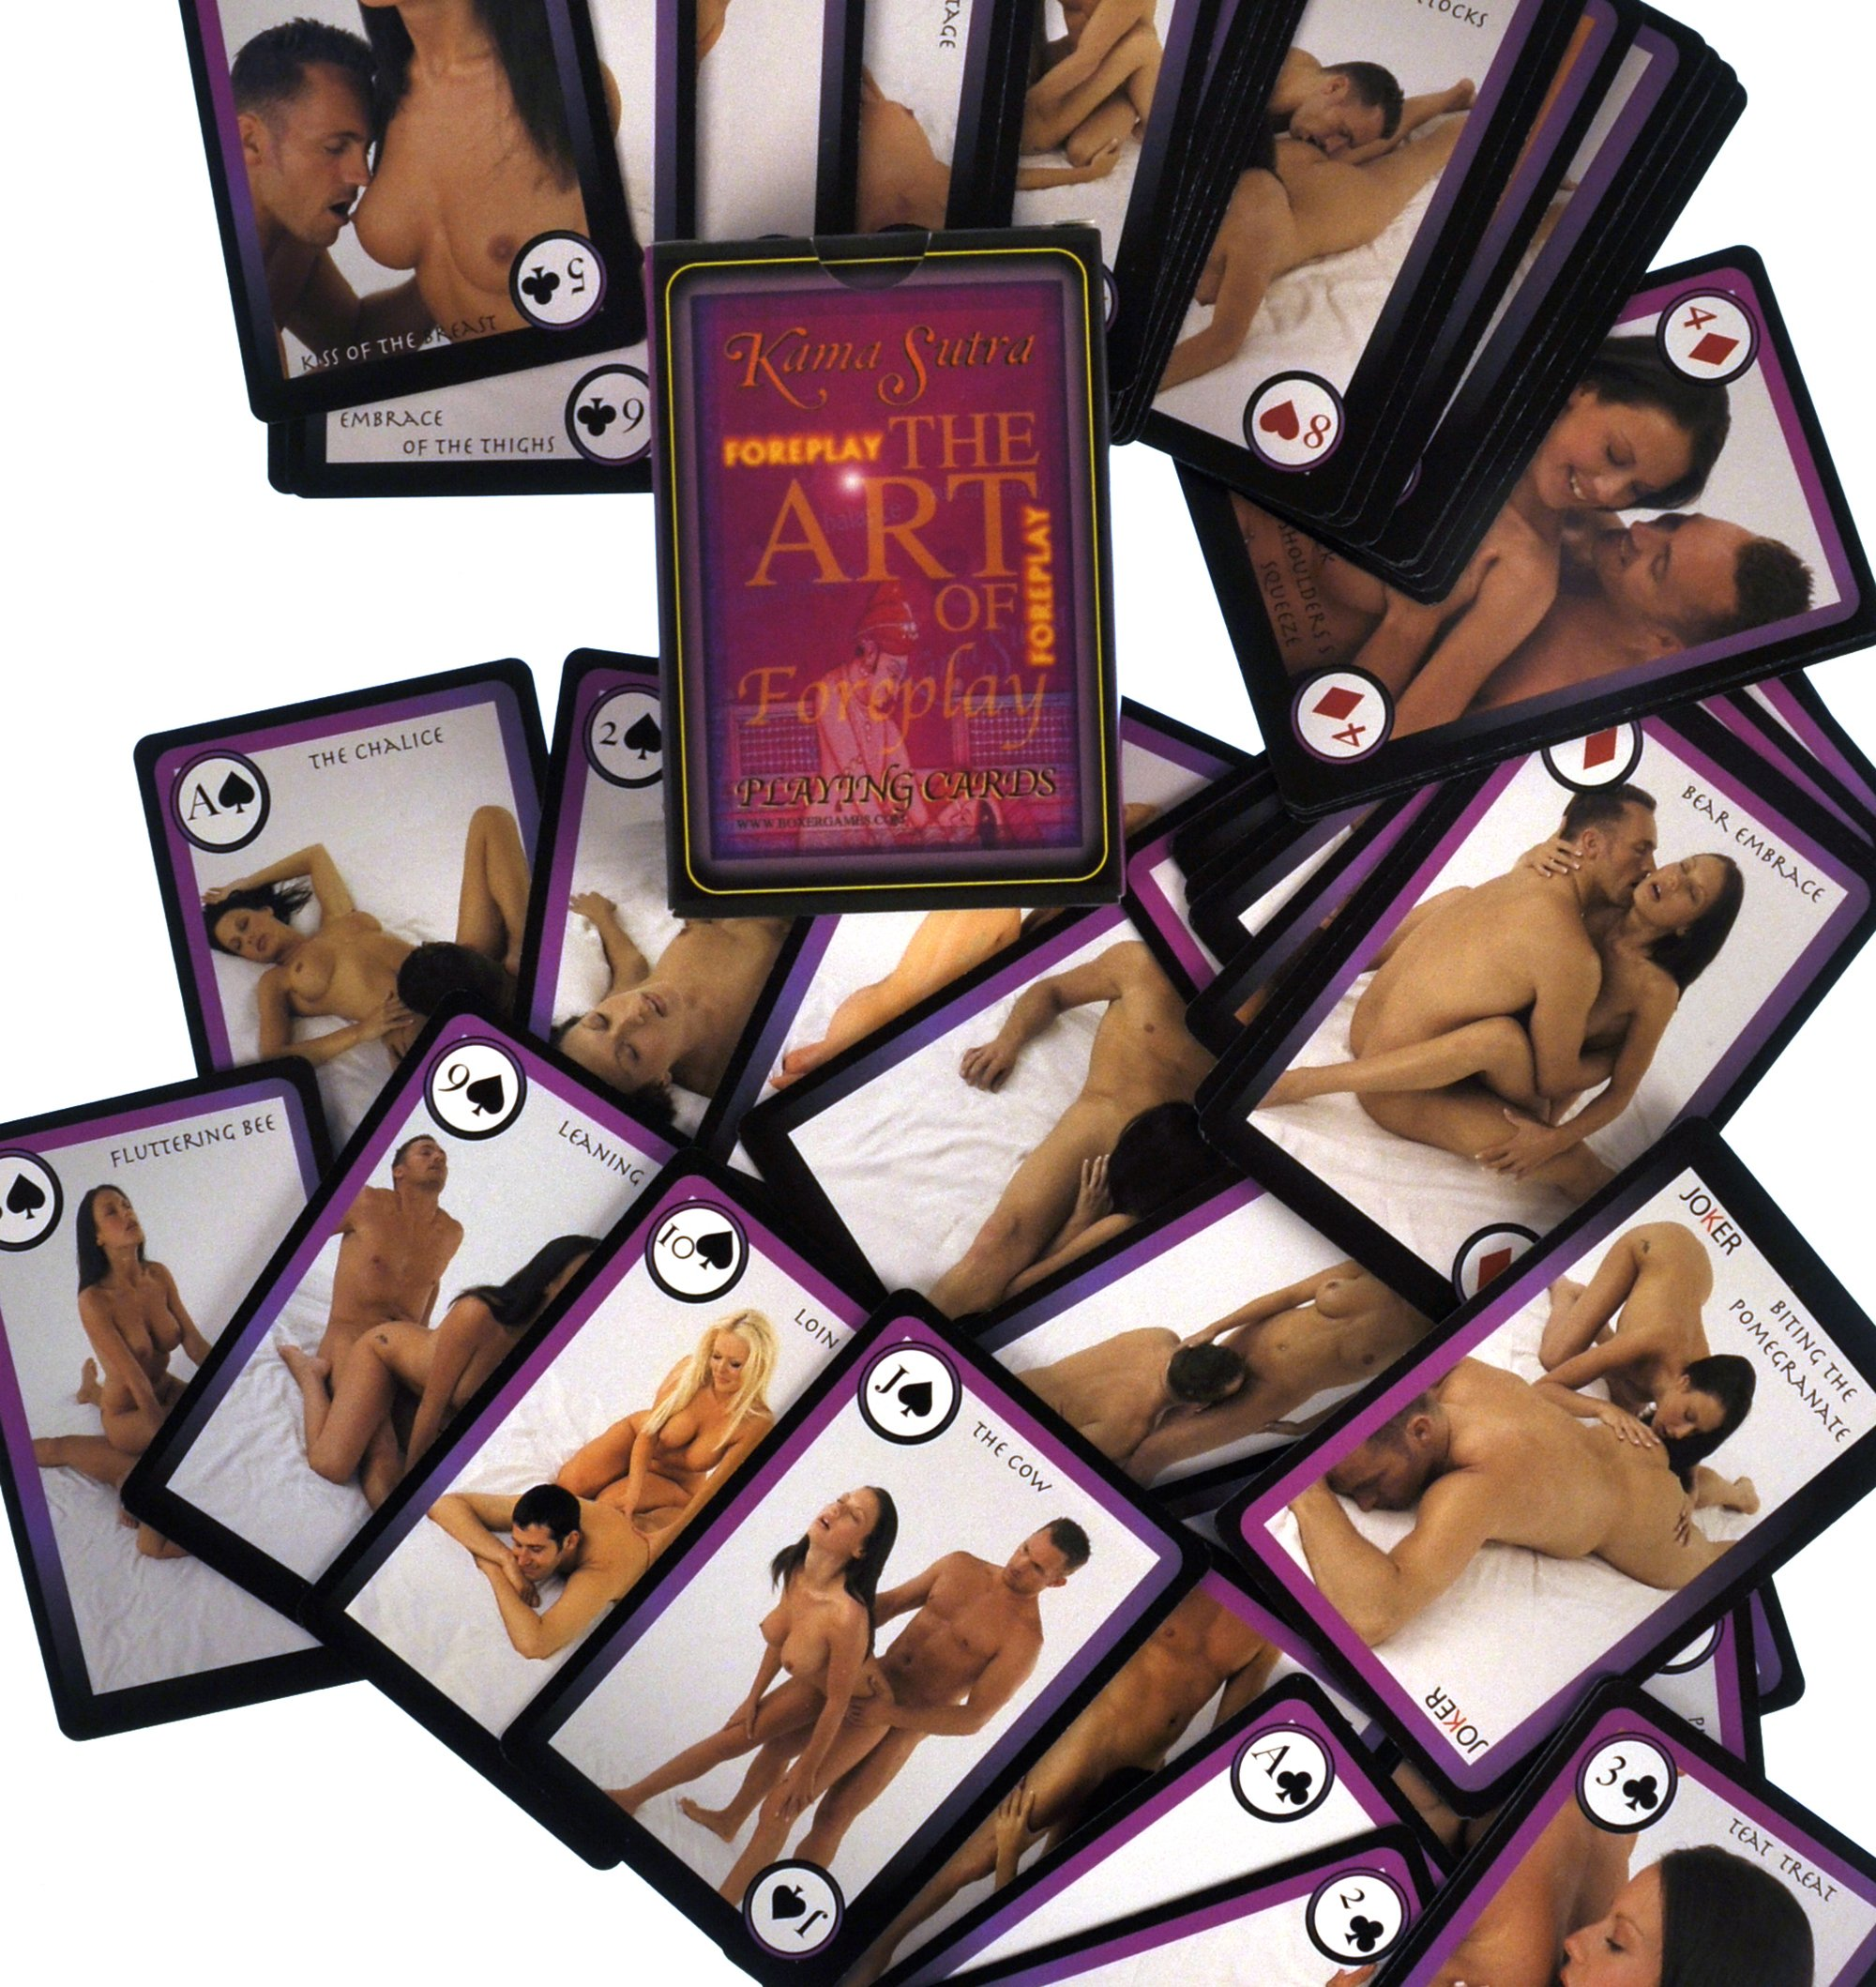 Have hit sex position playing card deck